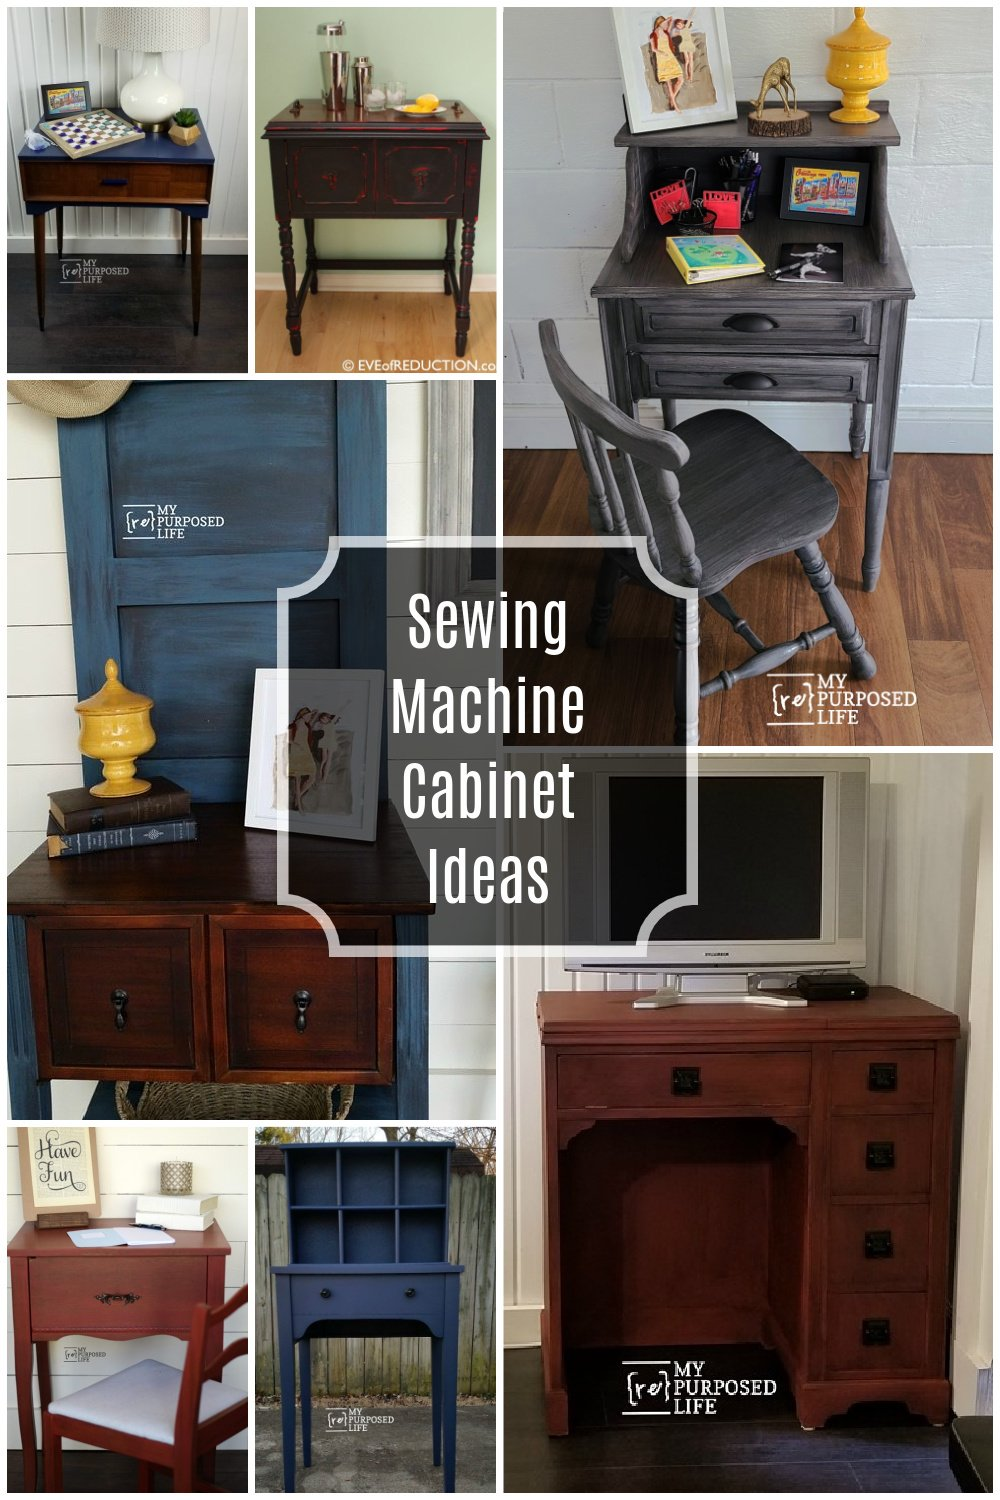 A collection of sewing machine cabinet ideas for everyone. Projects for beginners or intermediate woodworkers. Something for you to DIY. So many great ideas. #MyRepurposedLife #repurposed #furniture #sewingcabinet #diy #project #table #desk #homeworkstation via @repurposedlife